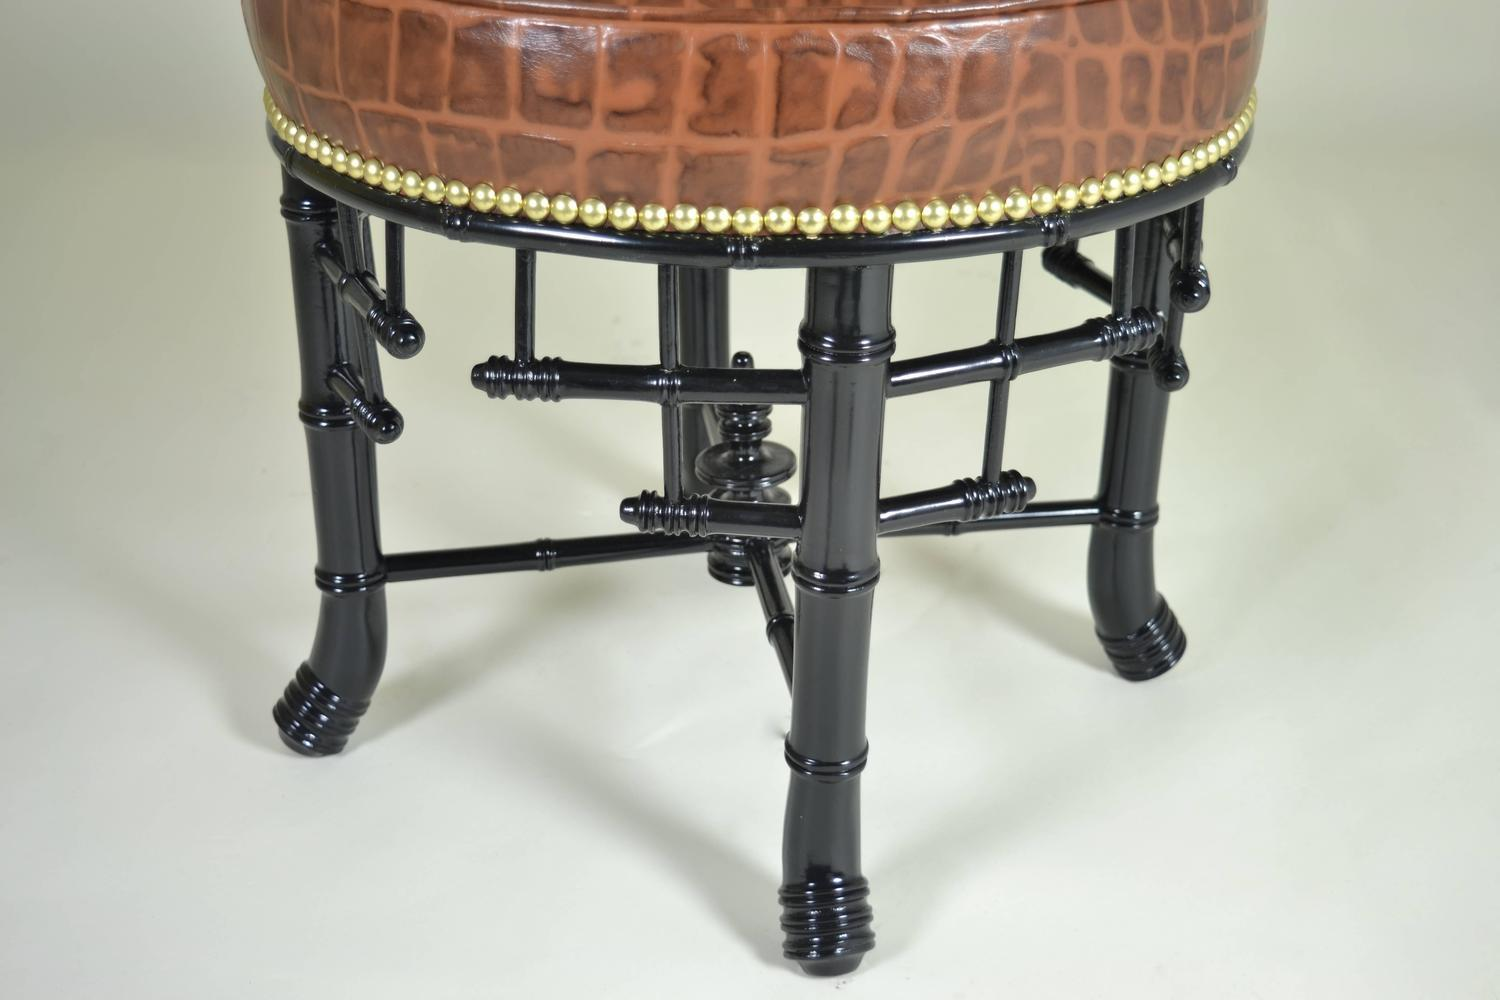 Regency Style Faux Bamboo Stool with Leather Cover - Image 4 of 7  sc 1 st  DECASO & Luxury Regency Style Faux Bamboo Stool with Leather Cover | DECASO islam-shia.org